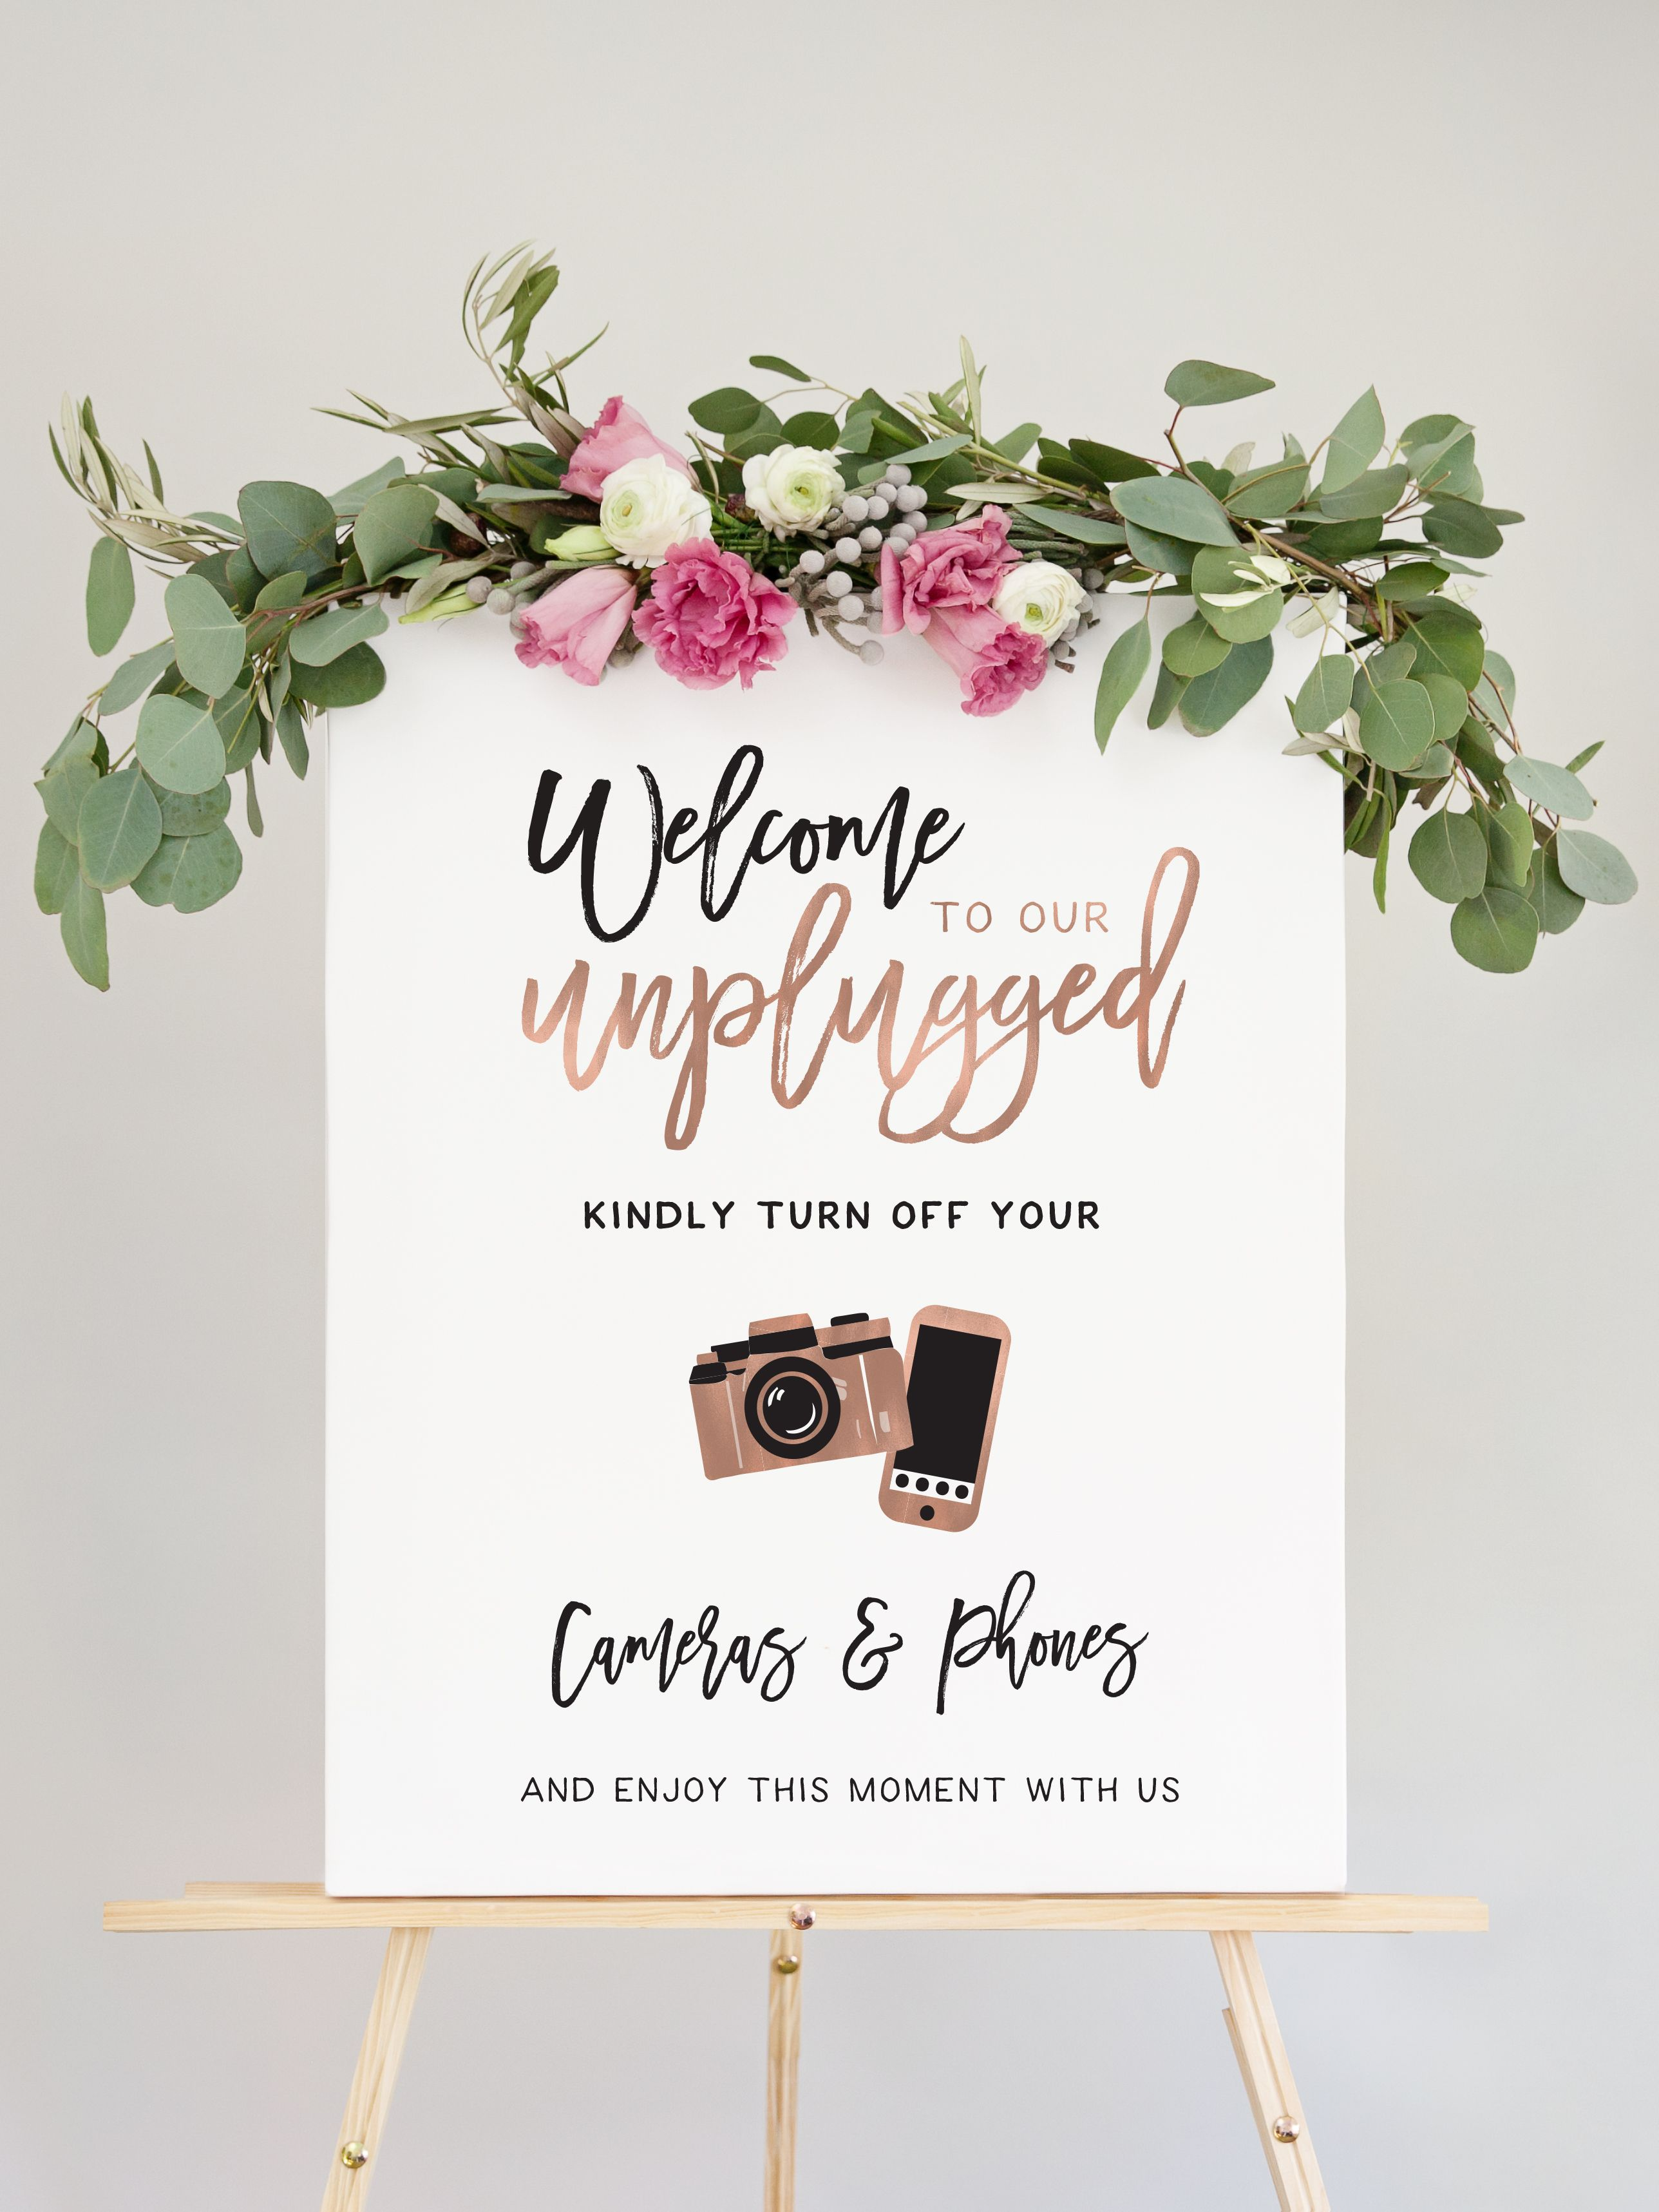 WELCOME TO THE UNPLUGGED WEDDING TREND